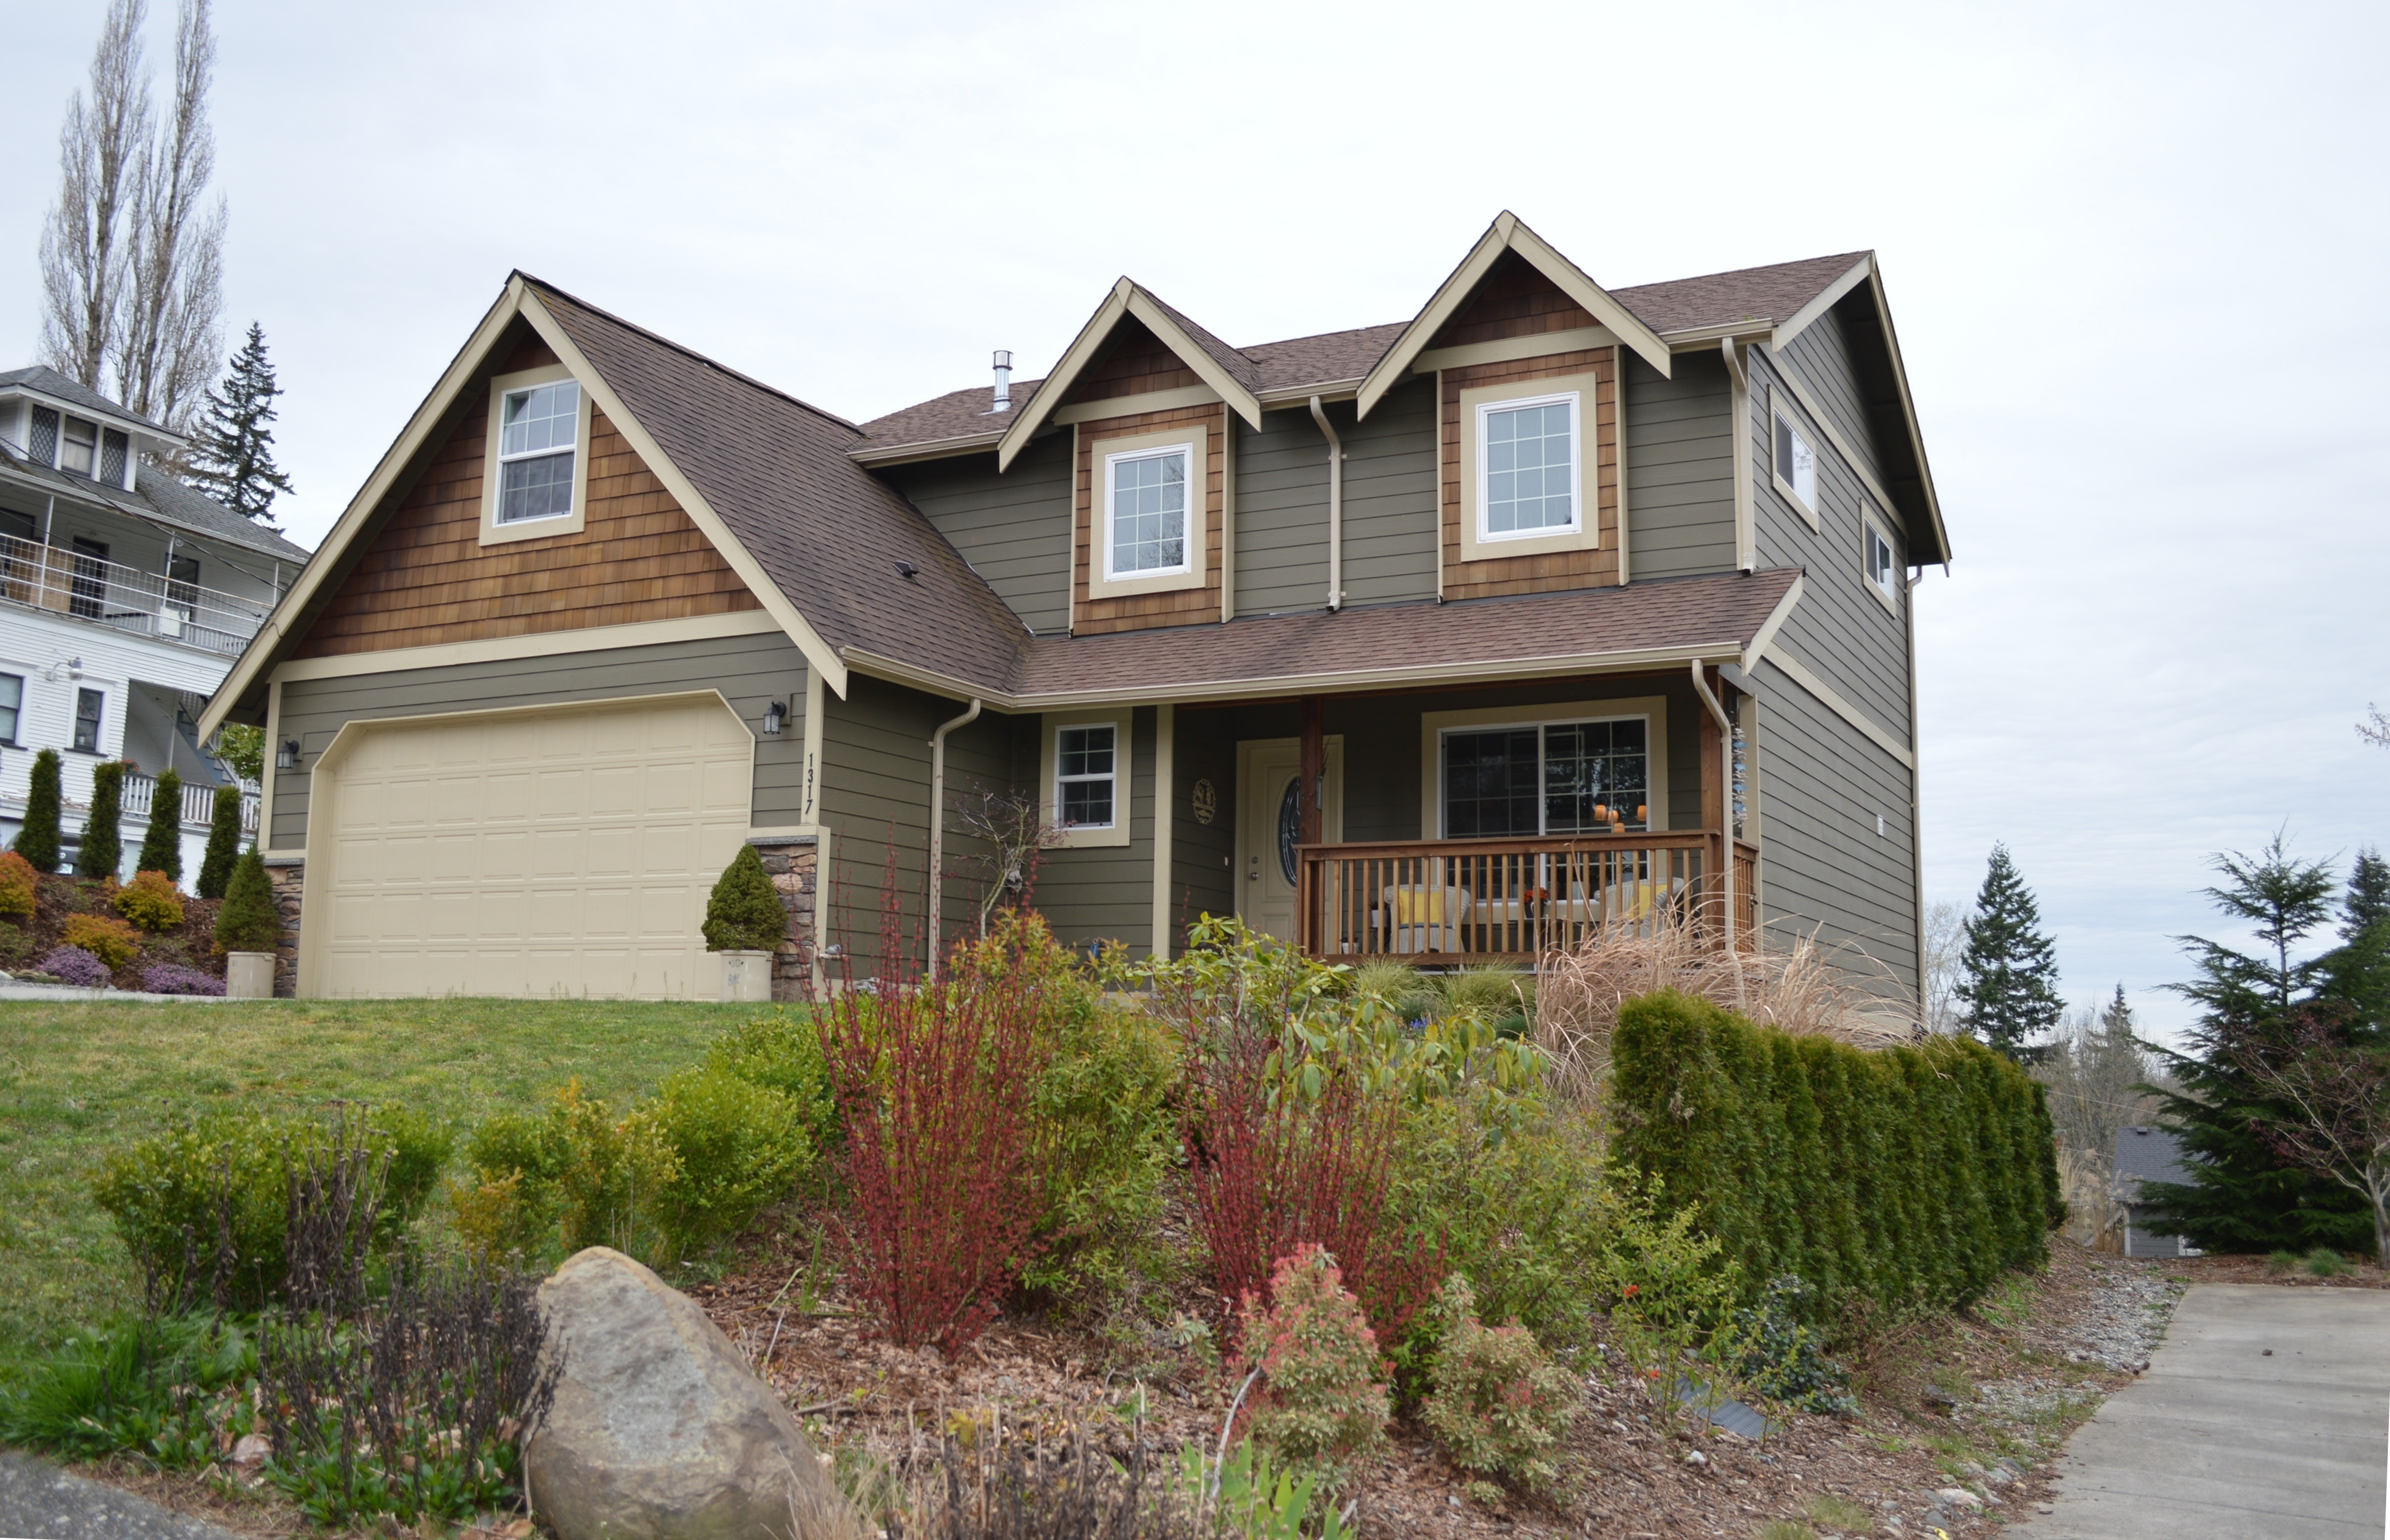 bellingham wa 4 bedroom home with mother in law suite